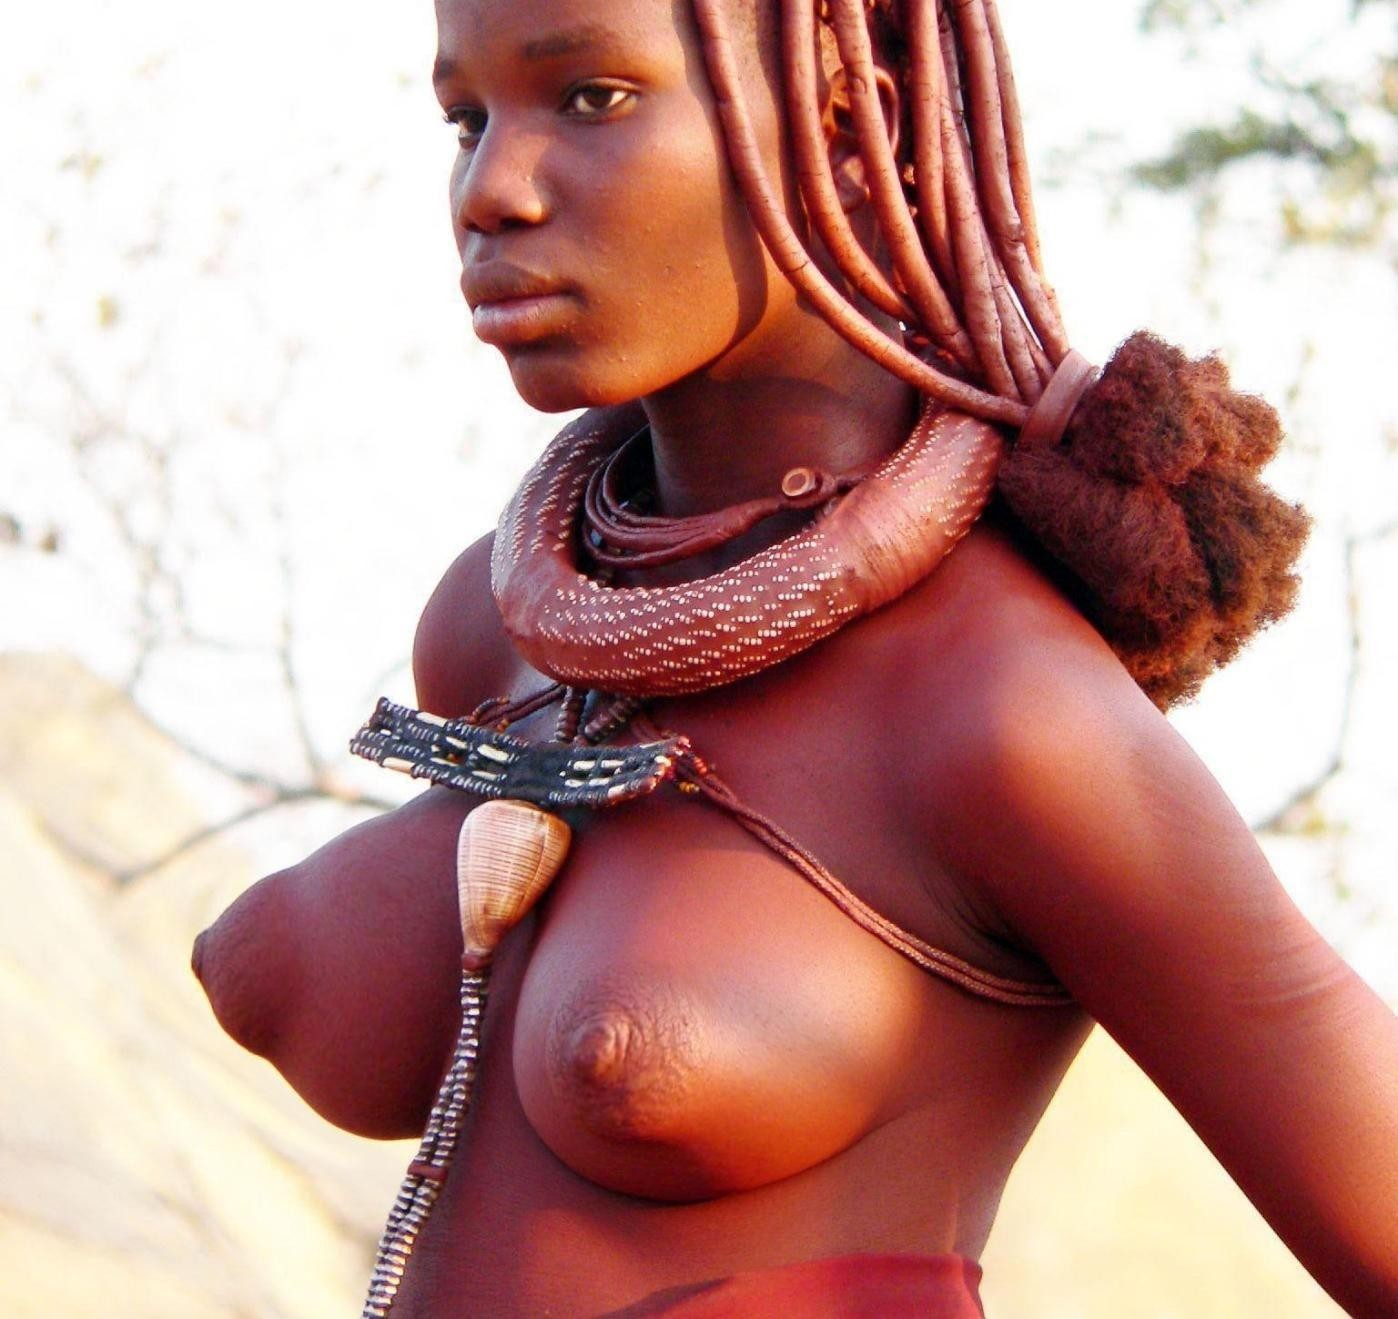 Black with nipples african boobs girl